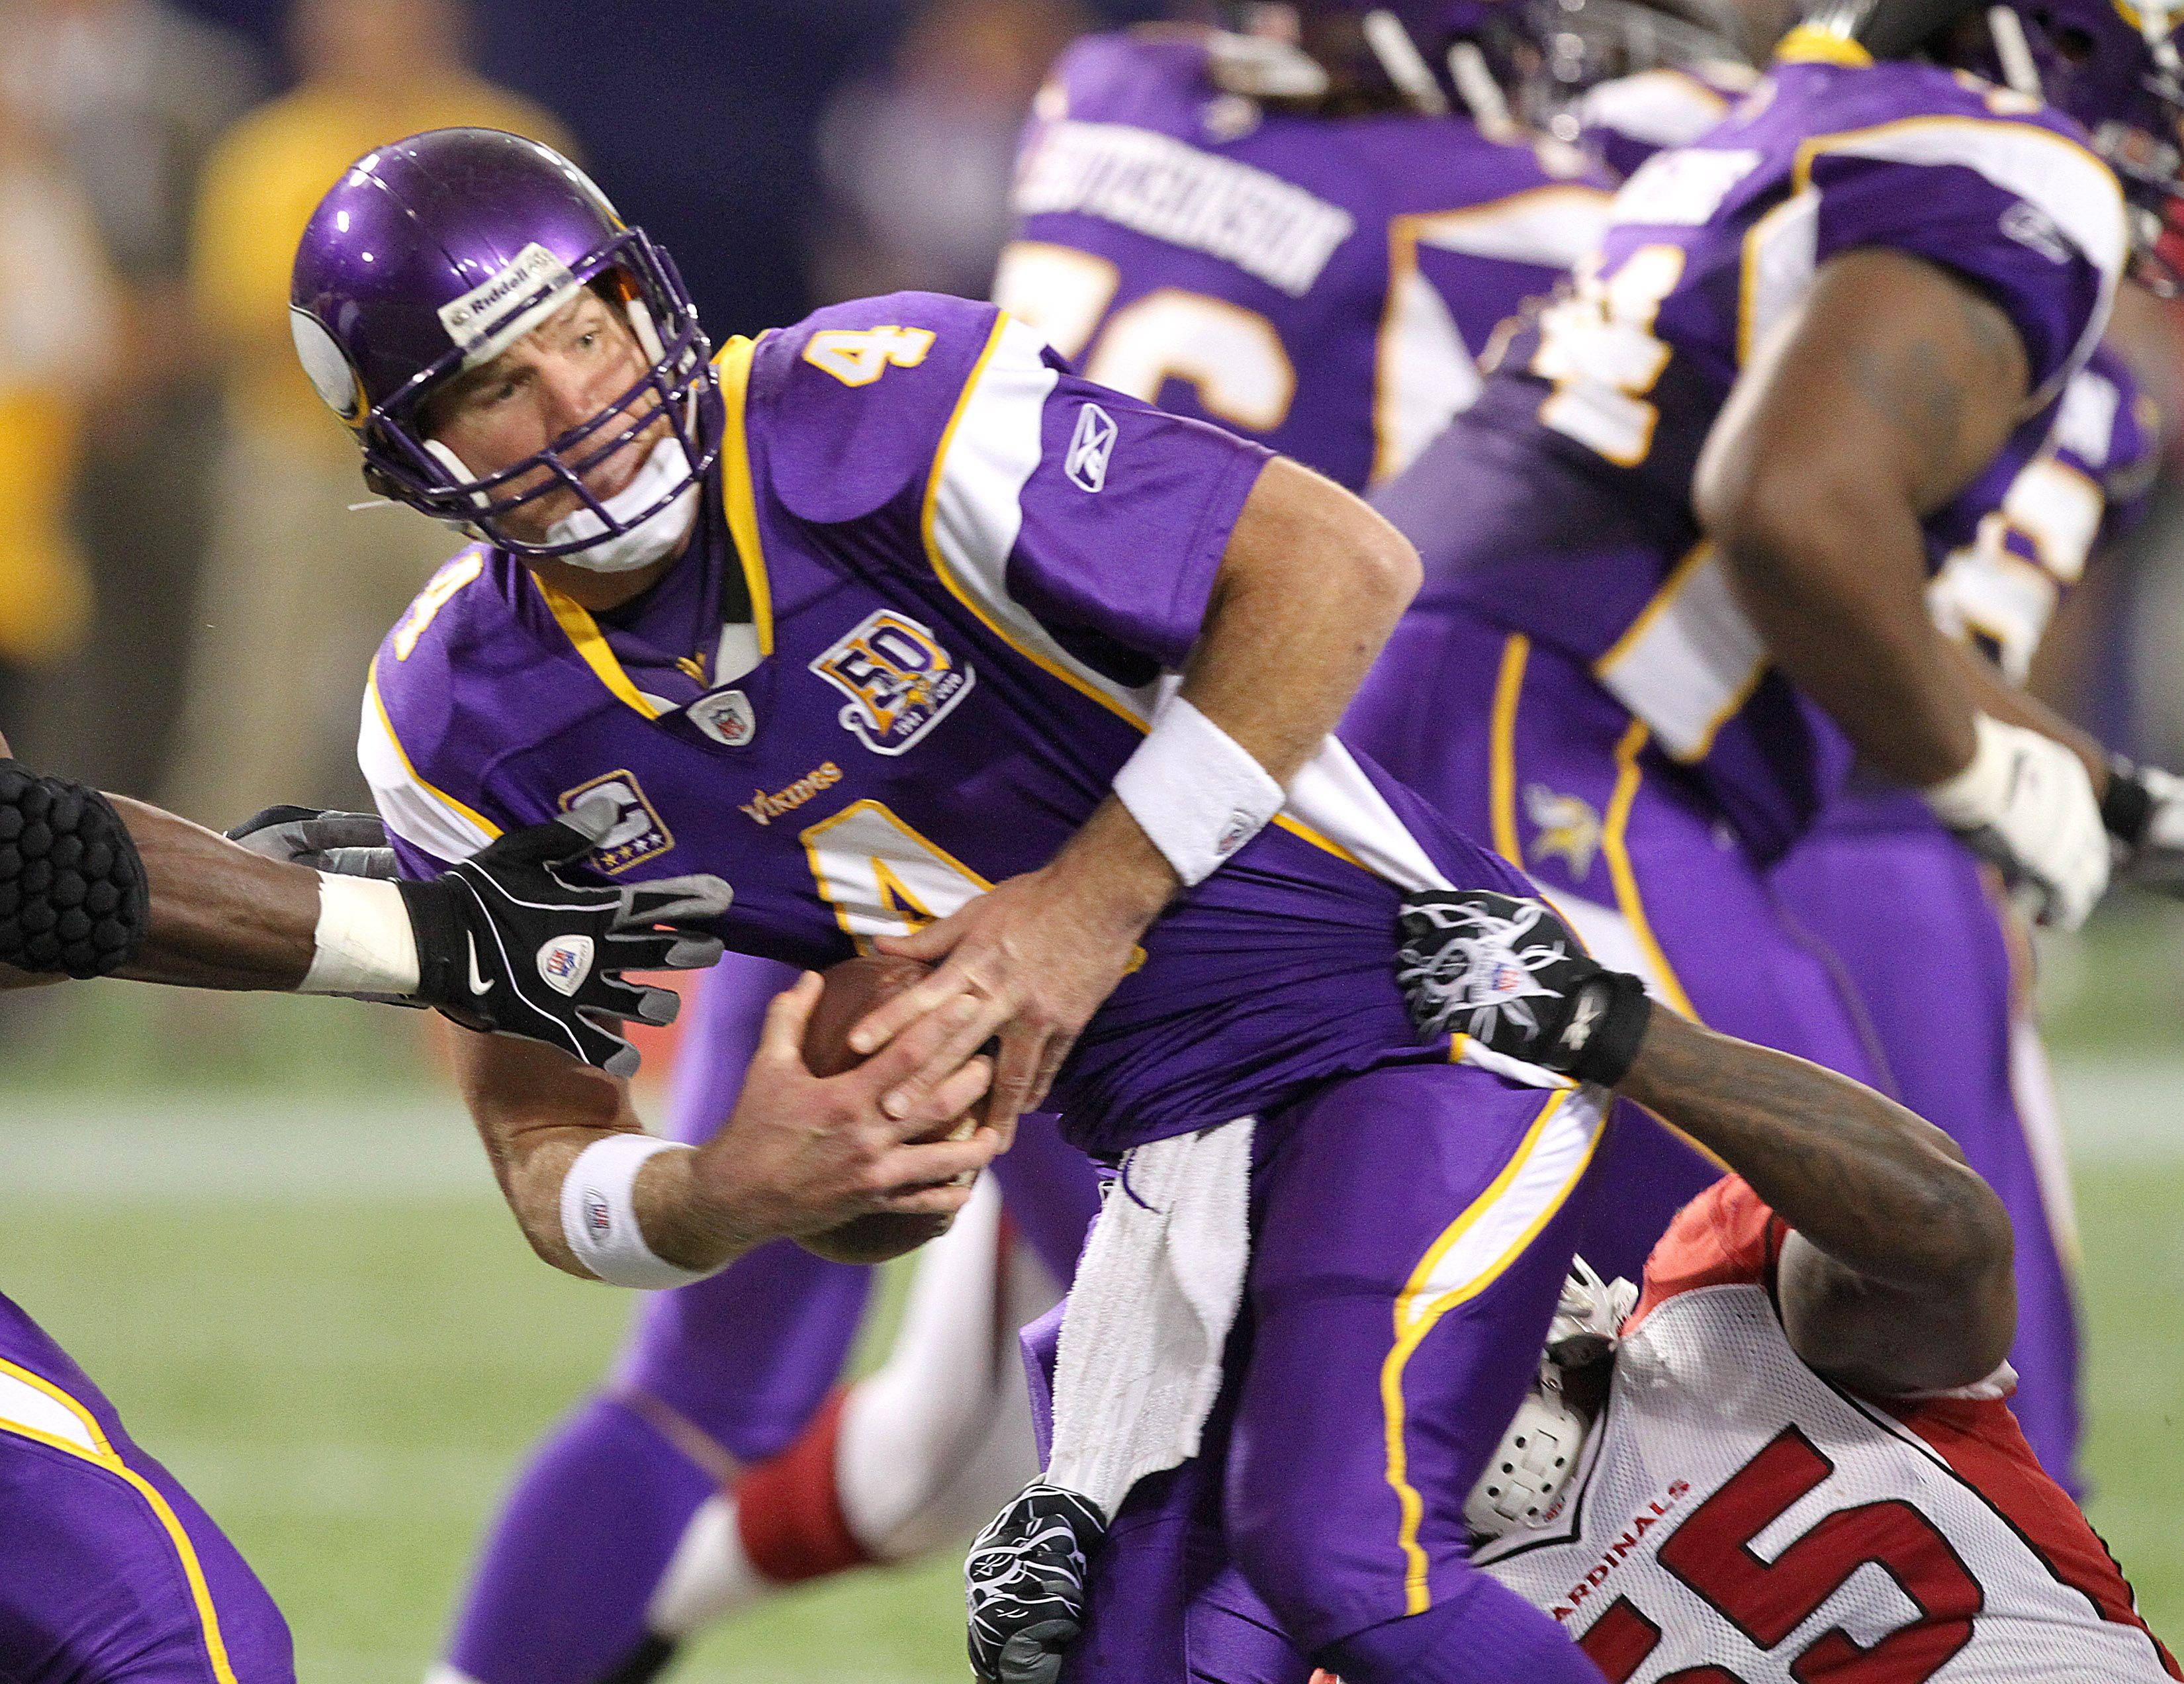 Minnesota Vikings quarterback Brett Favre (4) is sacked by Arizona Cardinals linebacker Joey Porter (55) in the first quarter of their NFL football game in Minneapolis, Sunday, Nov. 7, 2010.